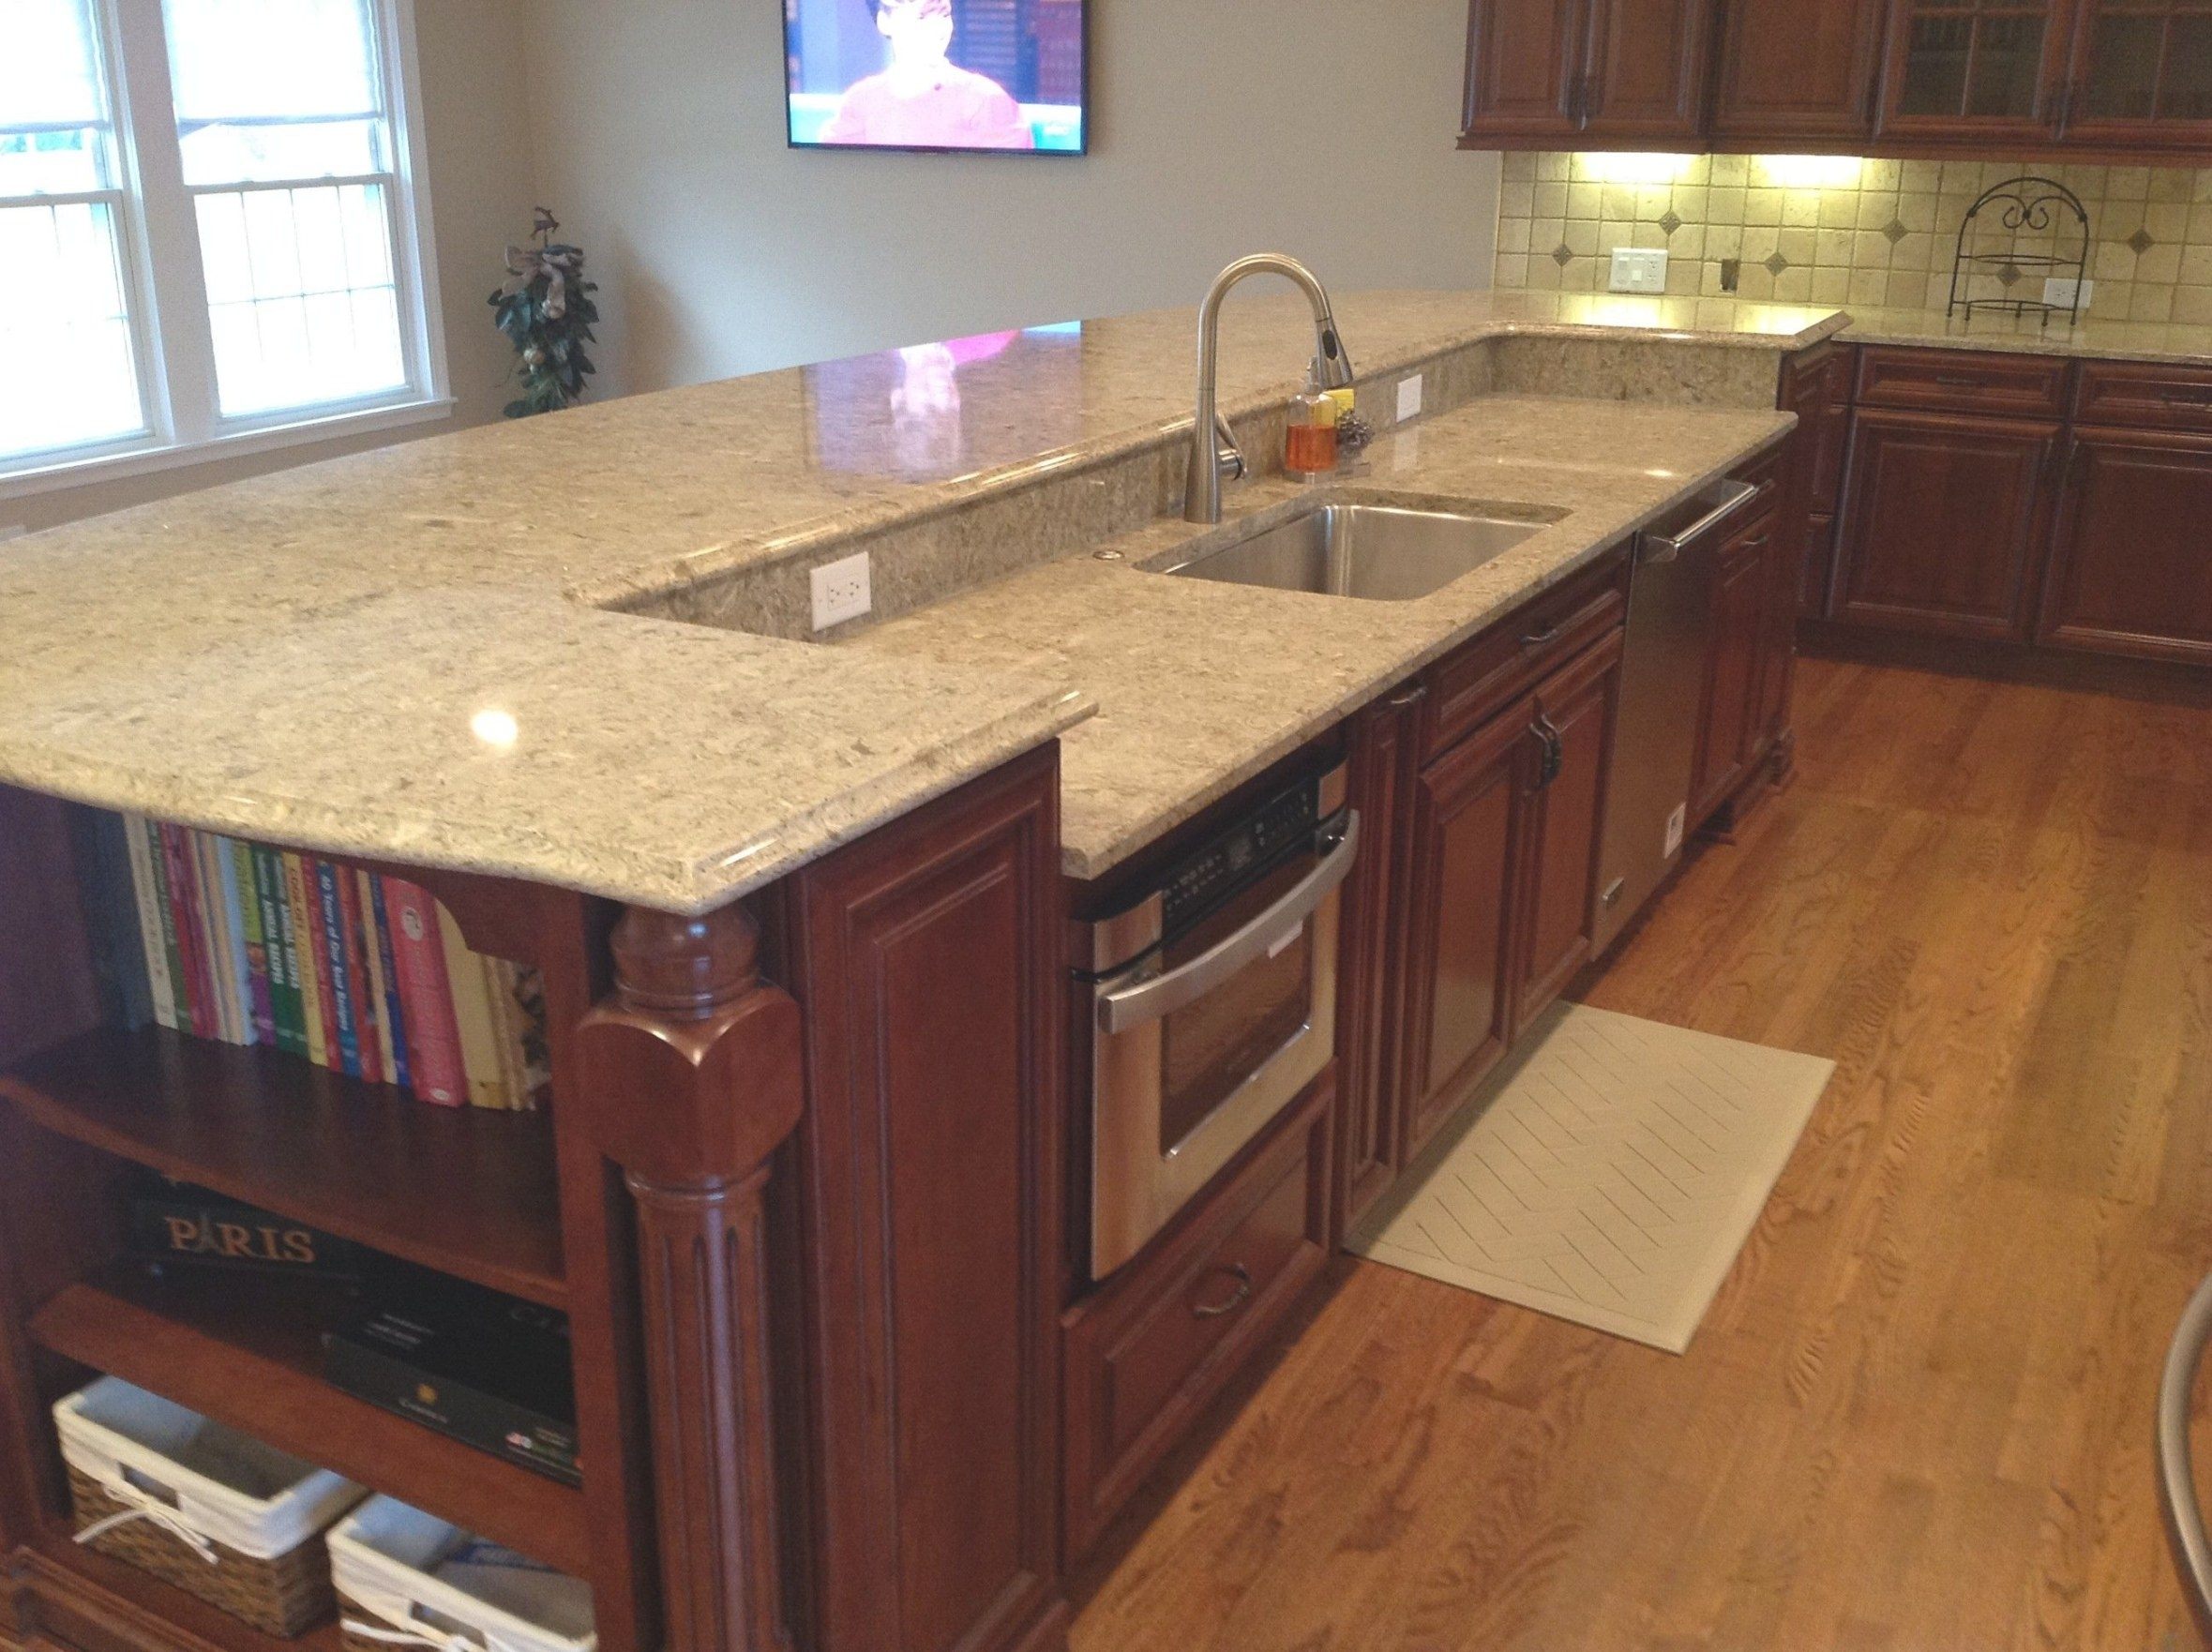 A 12' Island Contains The Sink, Dishwasher And Microwave intended for Kitchen Island With Sink